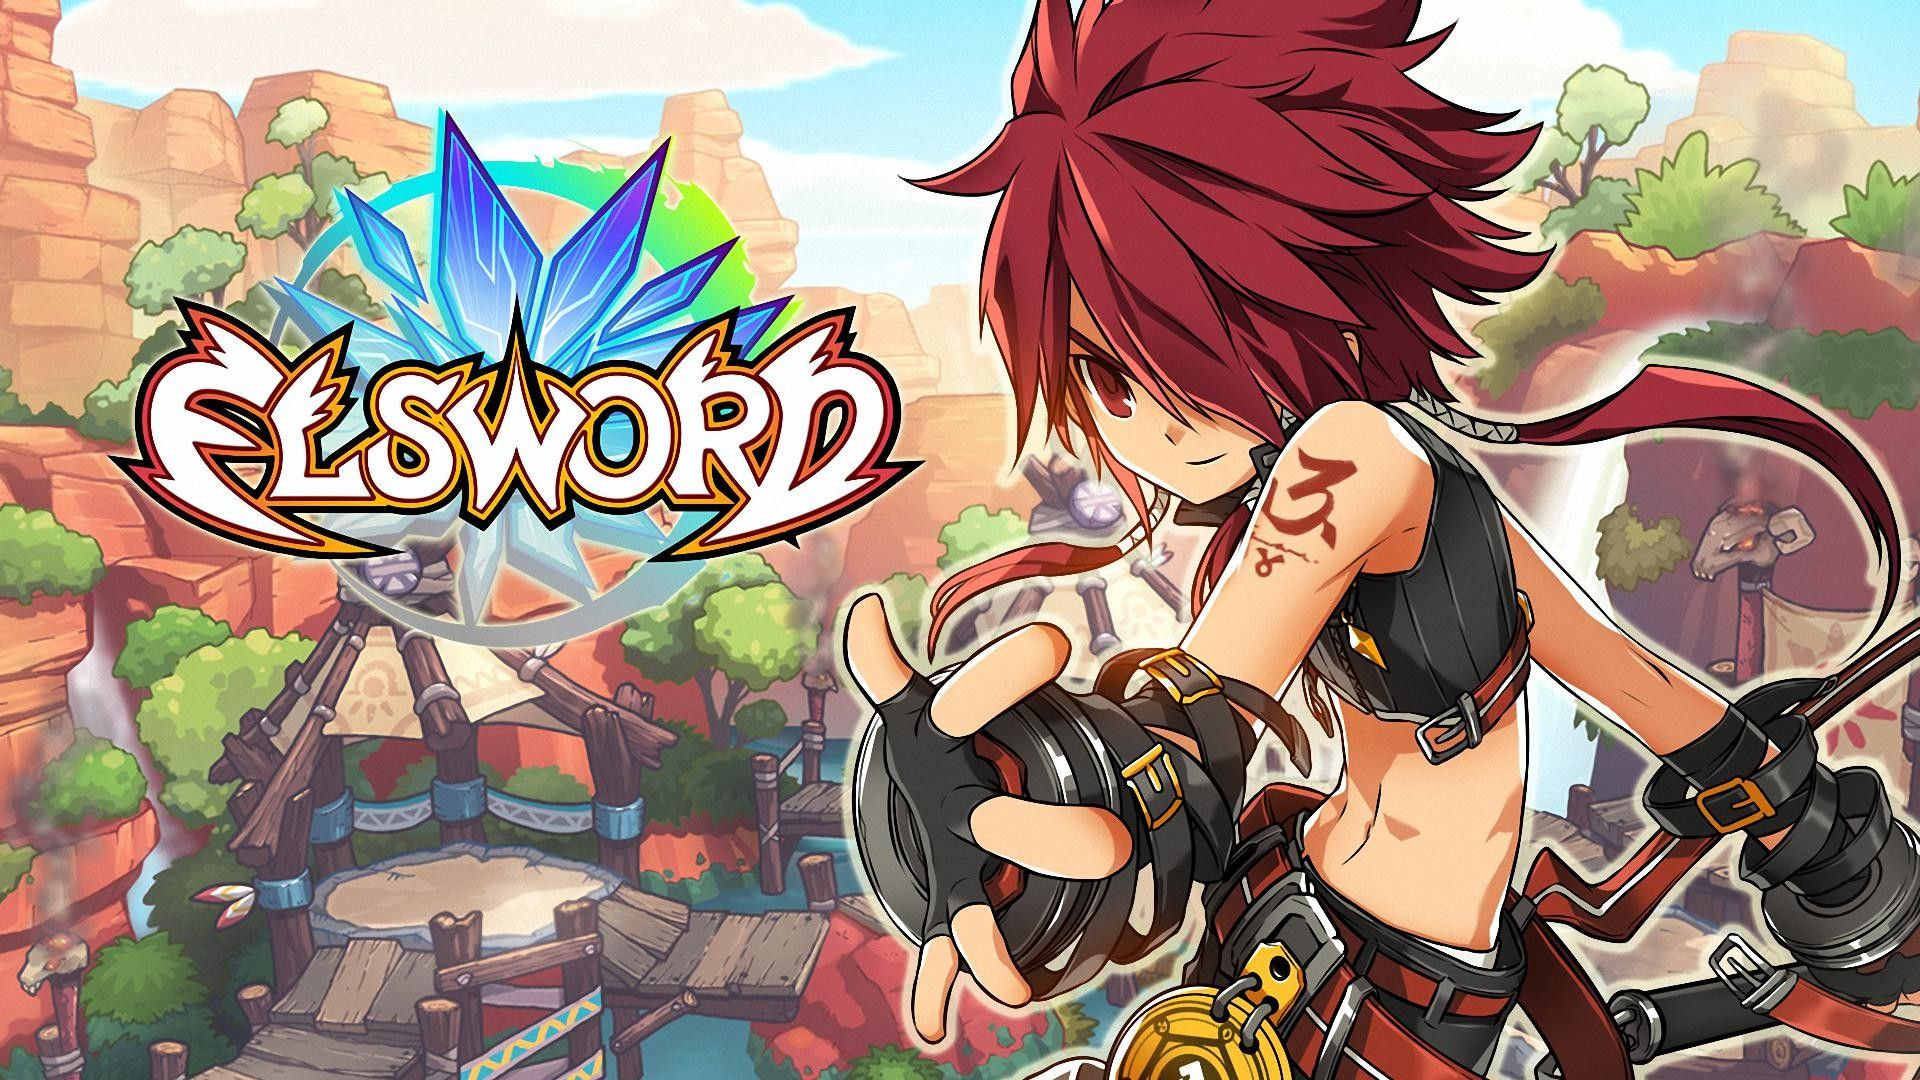 Elsword wallpaper hd wallpaper elsword pinterest hd elsword wallpaper hd wallpaper voltagebd Choice Image